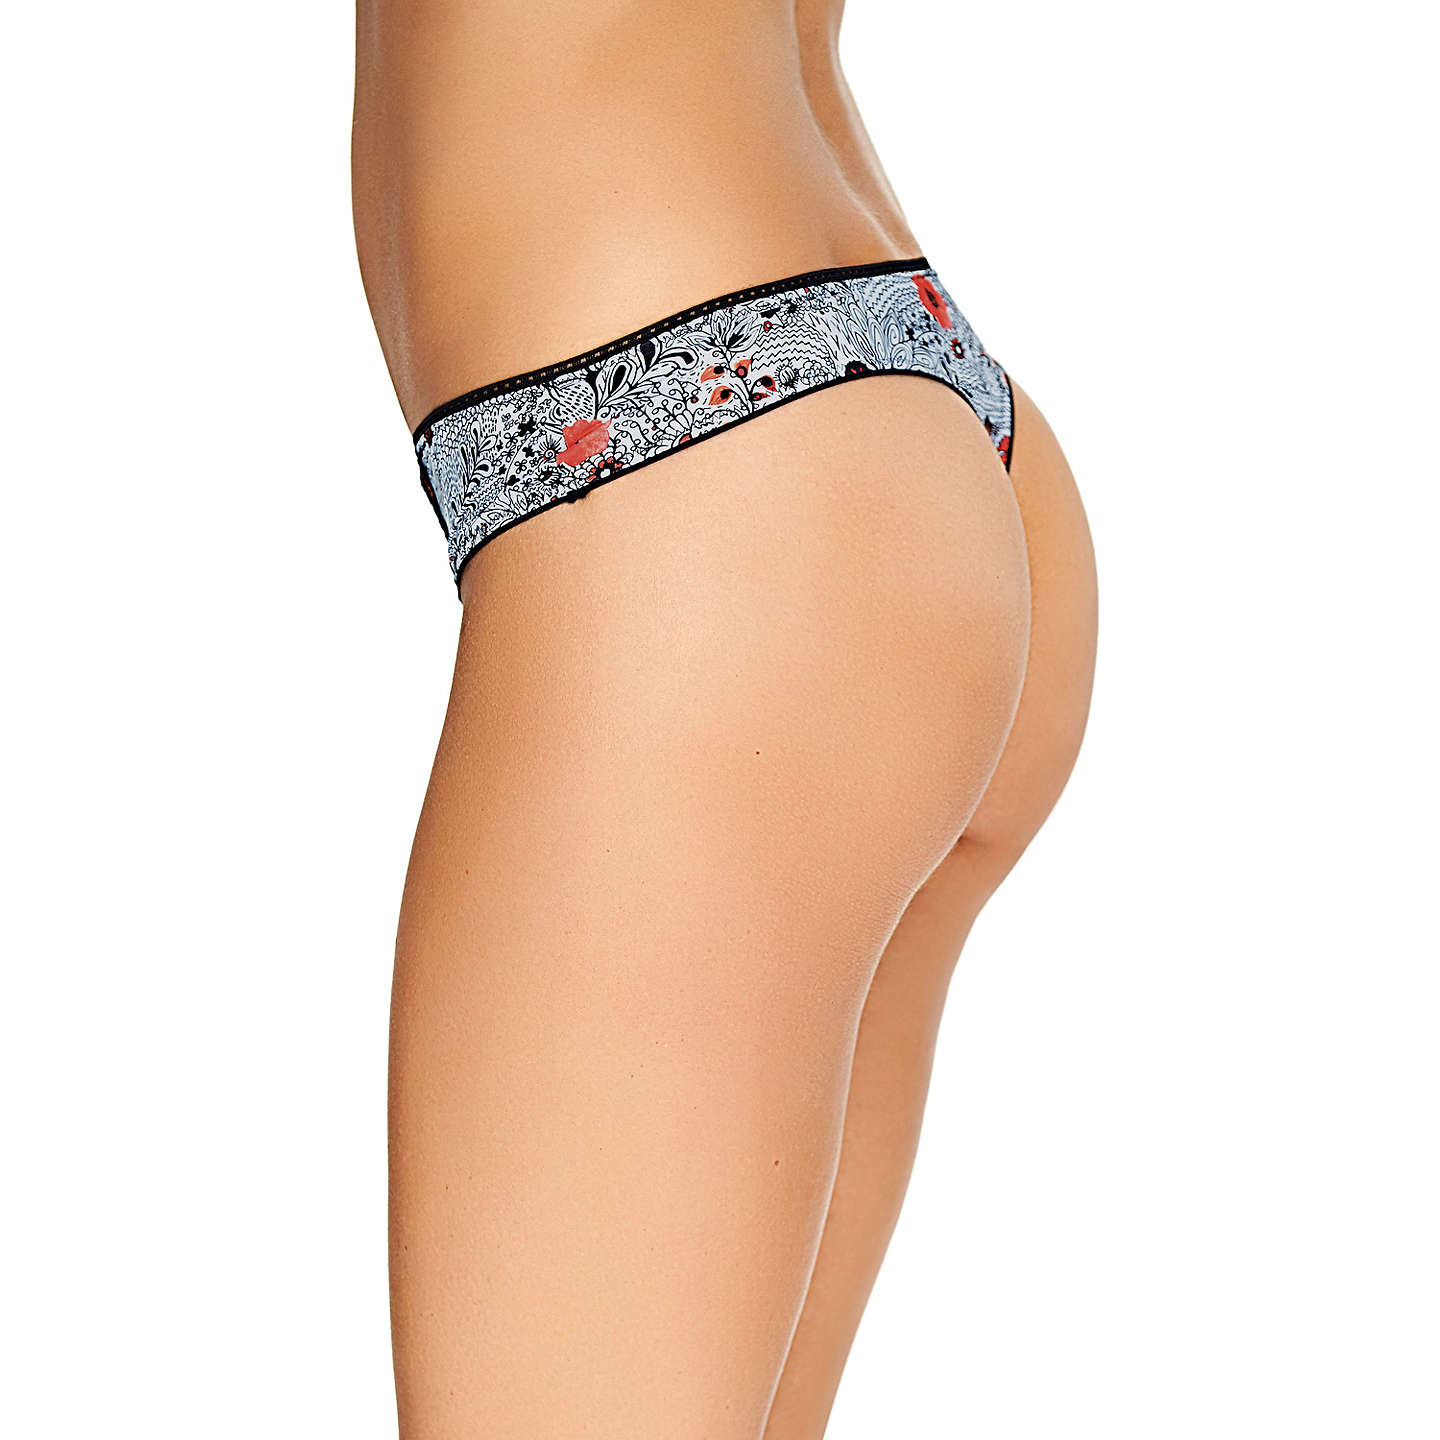 BuyFreya Etched Escape Thong, Monochrome, S Online at johnlewis.com